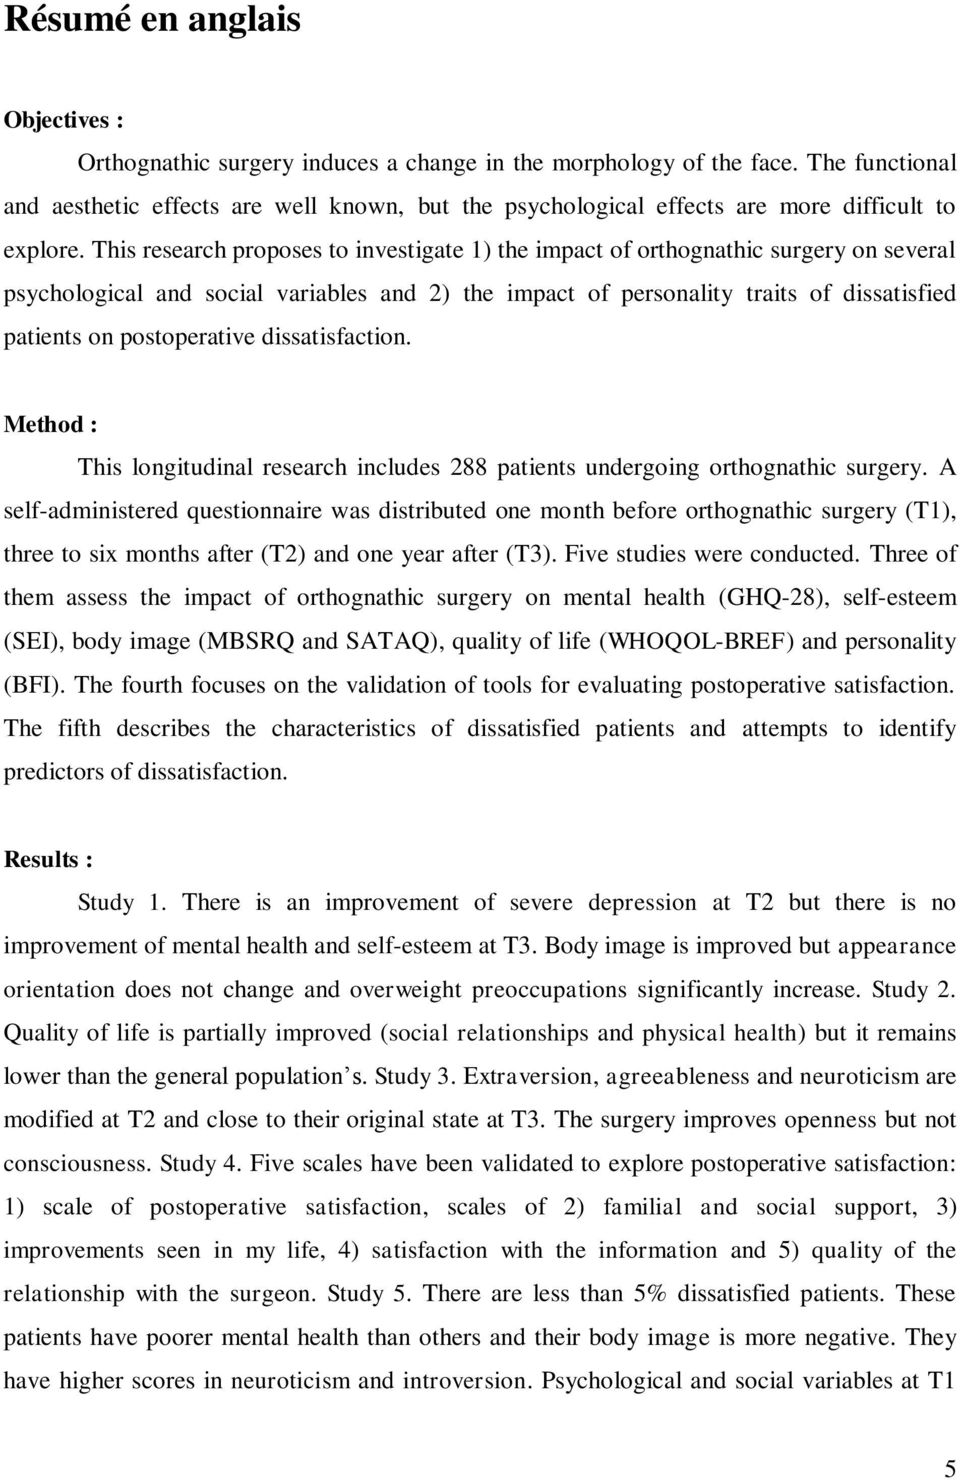 This research proposes to investigate 1) the impact of orthognathic surgery on several psychological and social variables and 2) the impact of personality traits of dissatisfied patients on